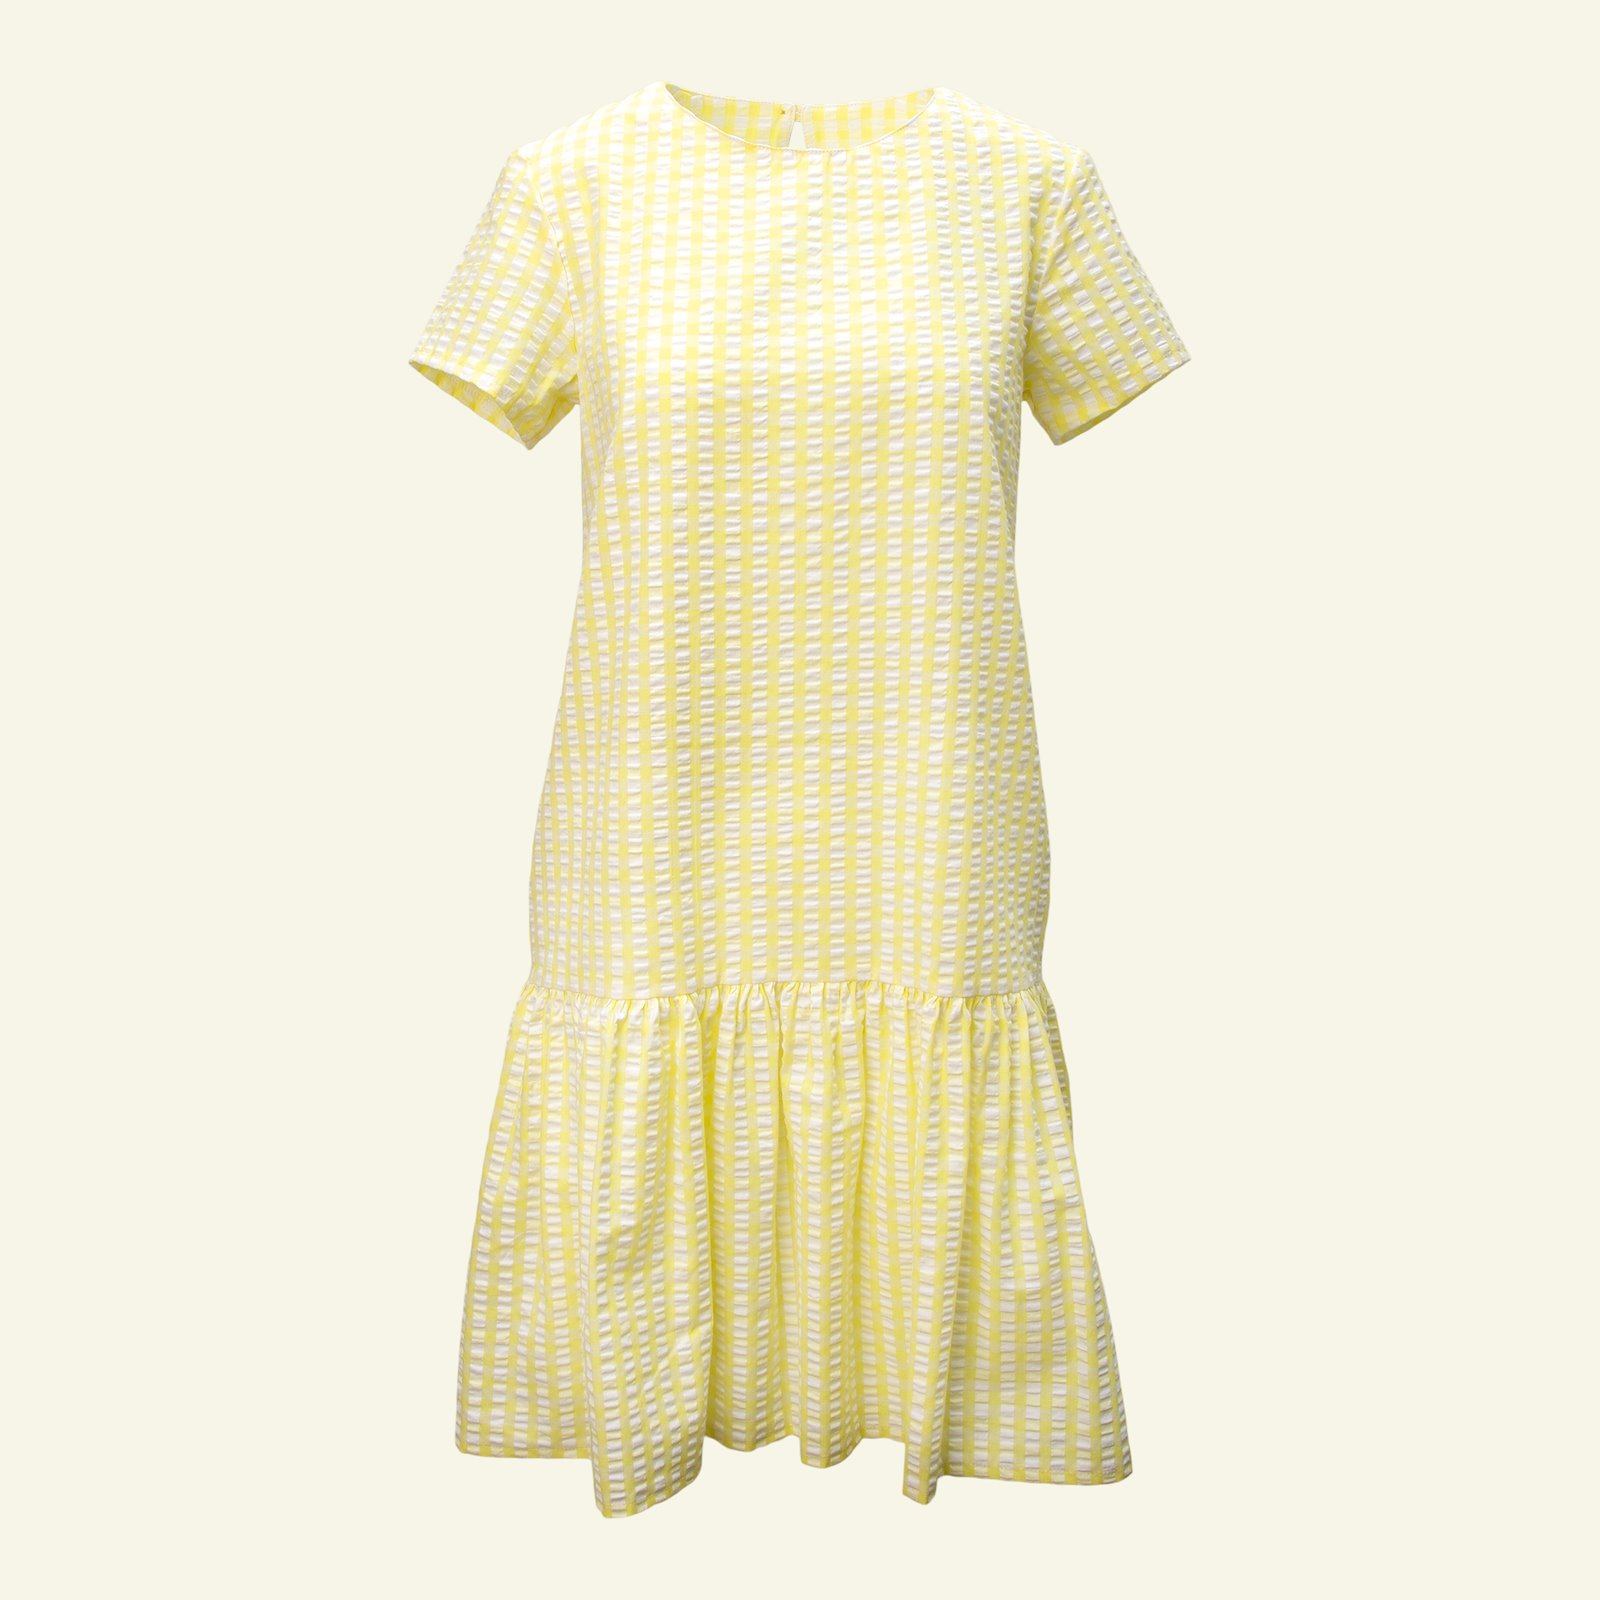 Dress with flounce and blouse, 44/16 p23145_580046_sskit